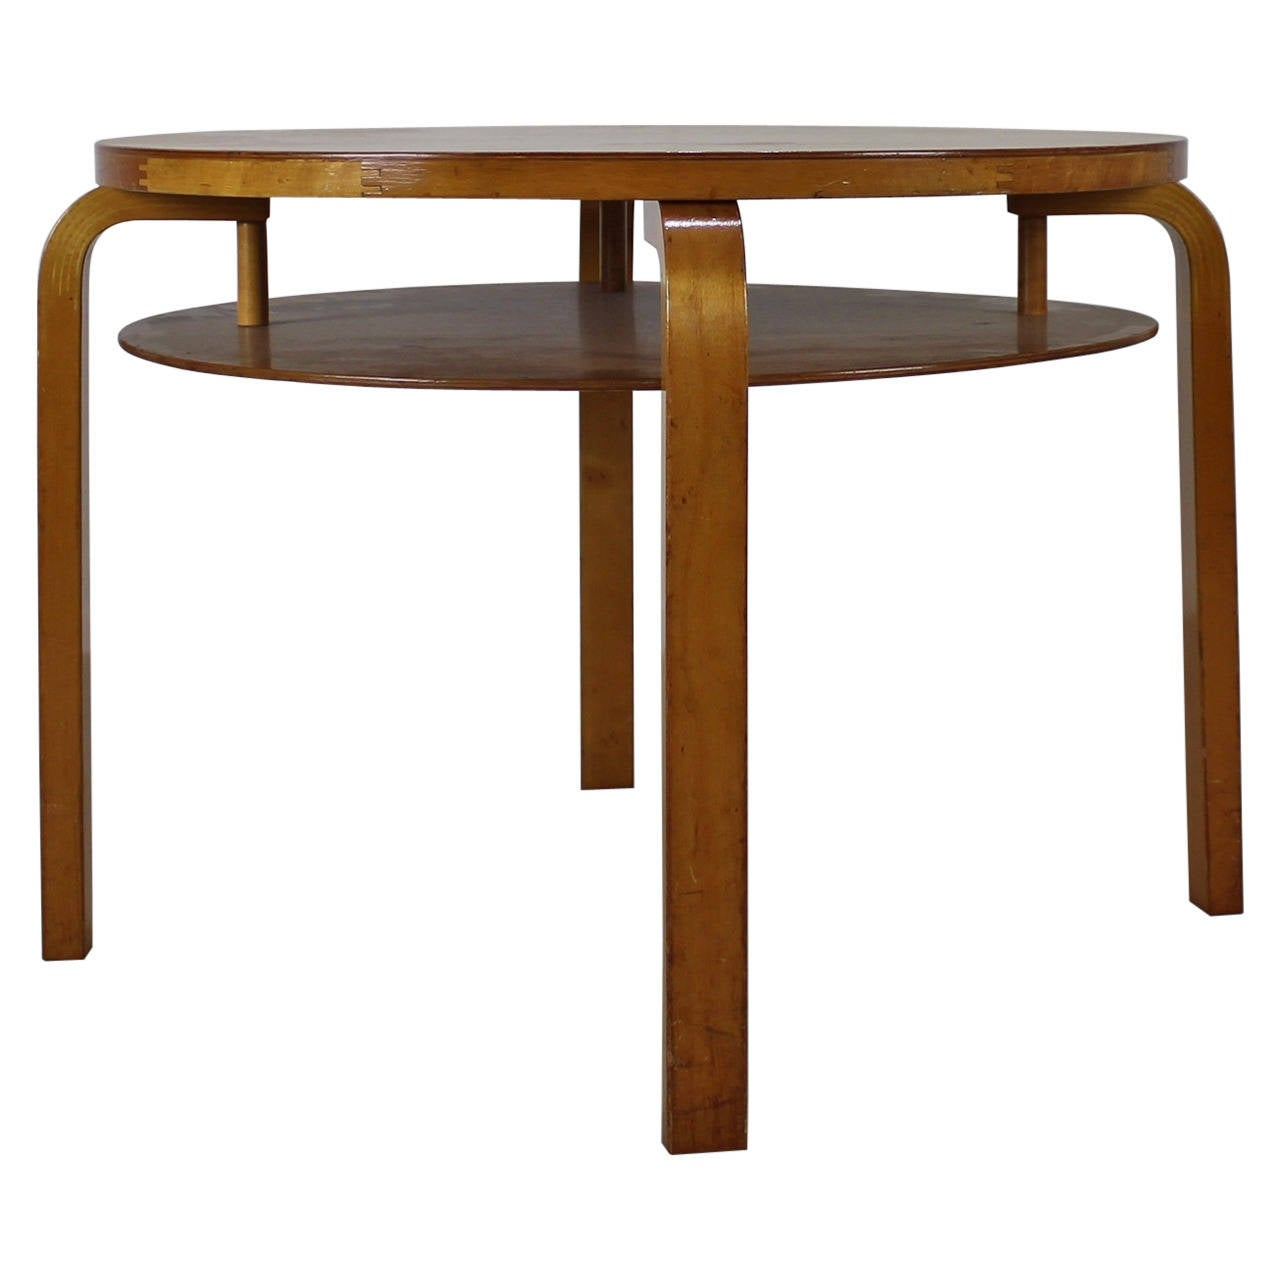 Birchwood lacquered alvar aalto table no 70 at 1stdibs